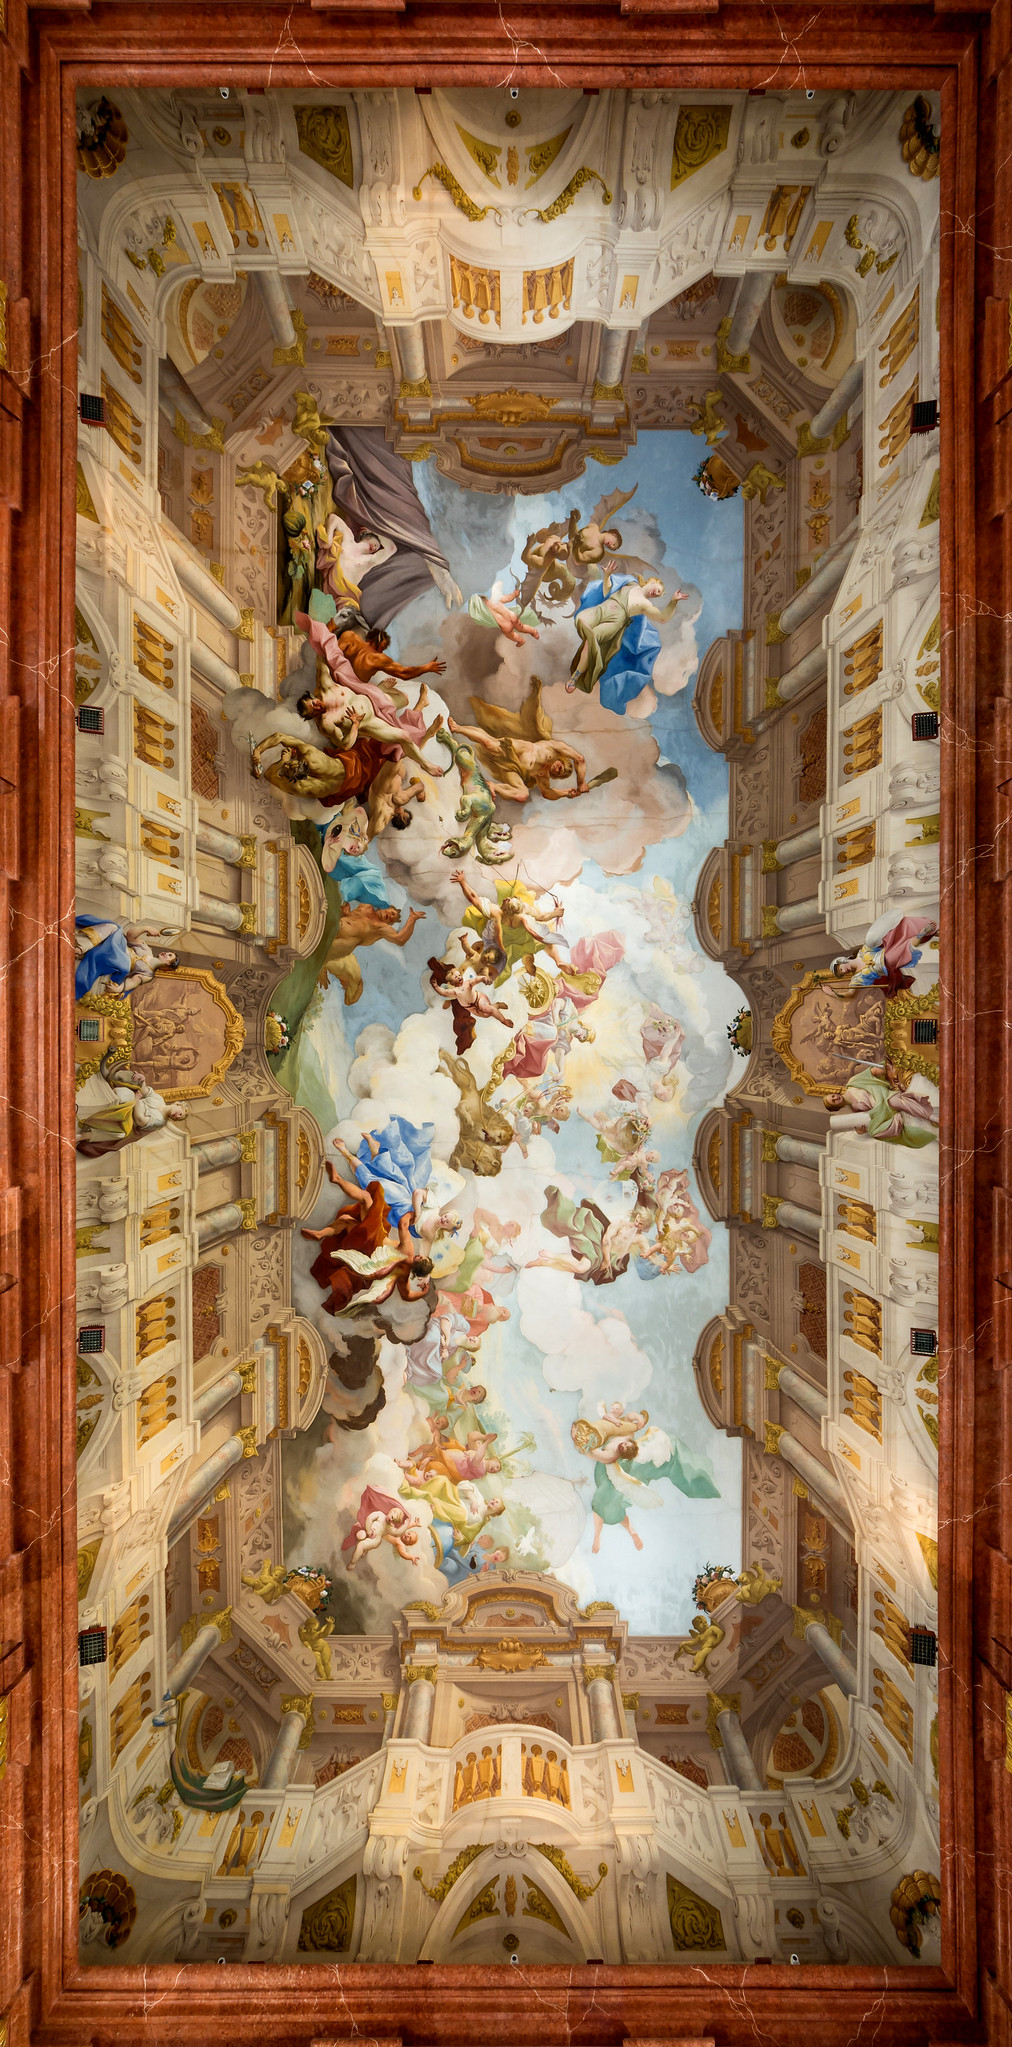 Ceiling fresco in the Marble Hall of Melk Abbey by Paul Troger, 1730. Credit Uoaei1